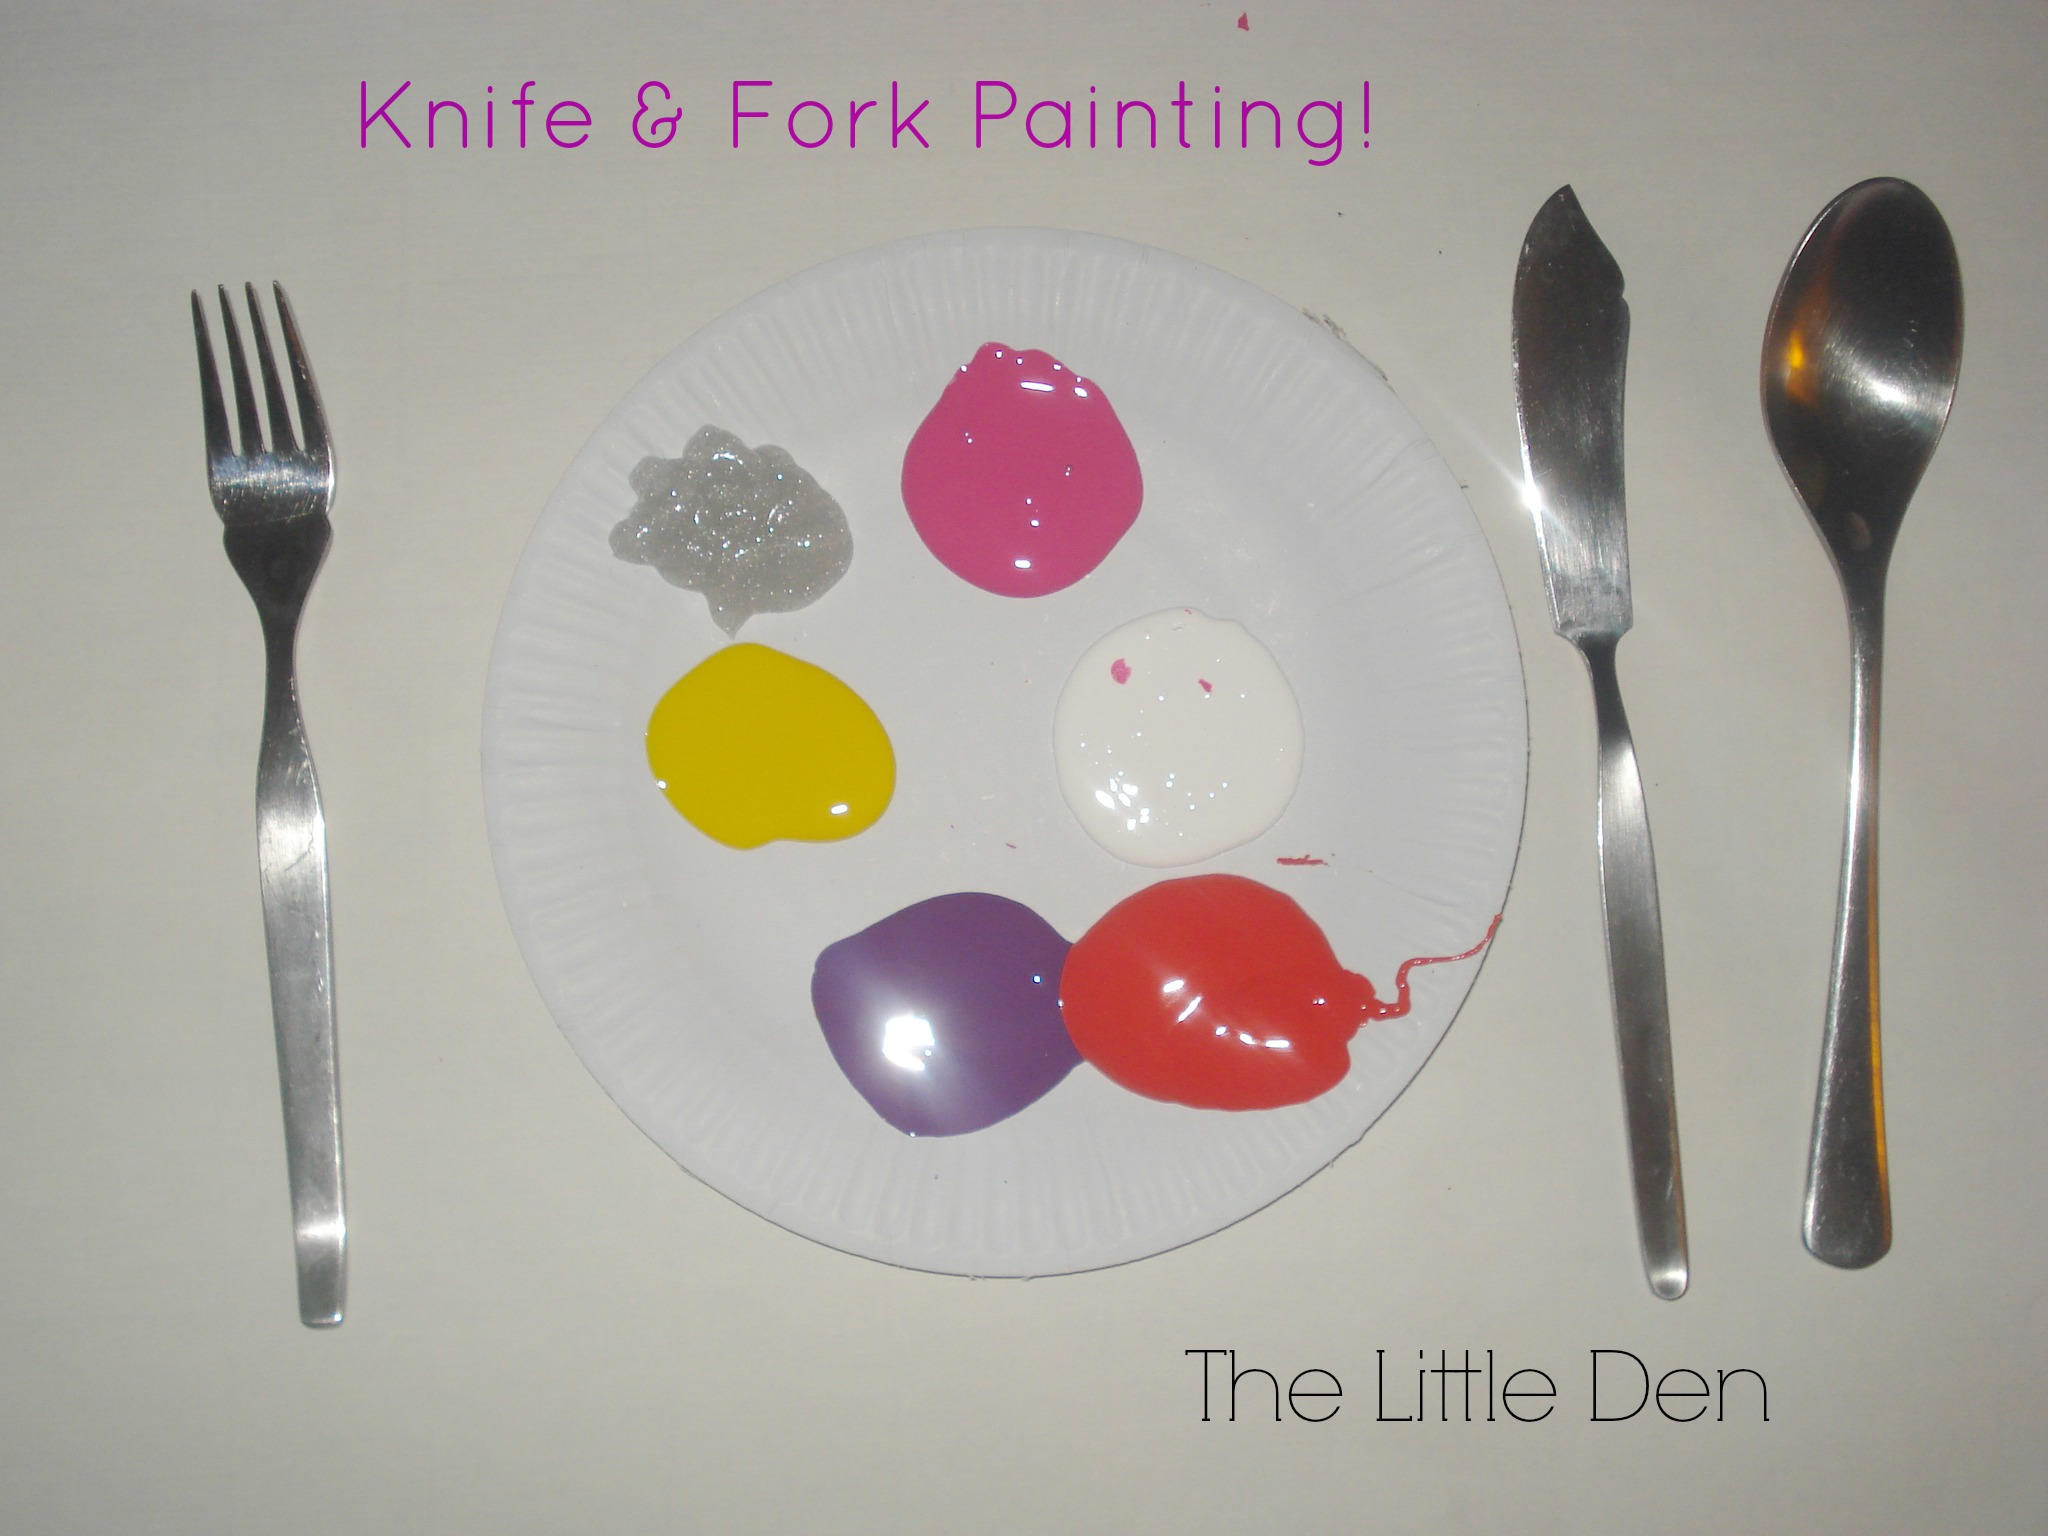 Knife & Fork Painting